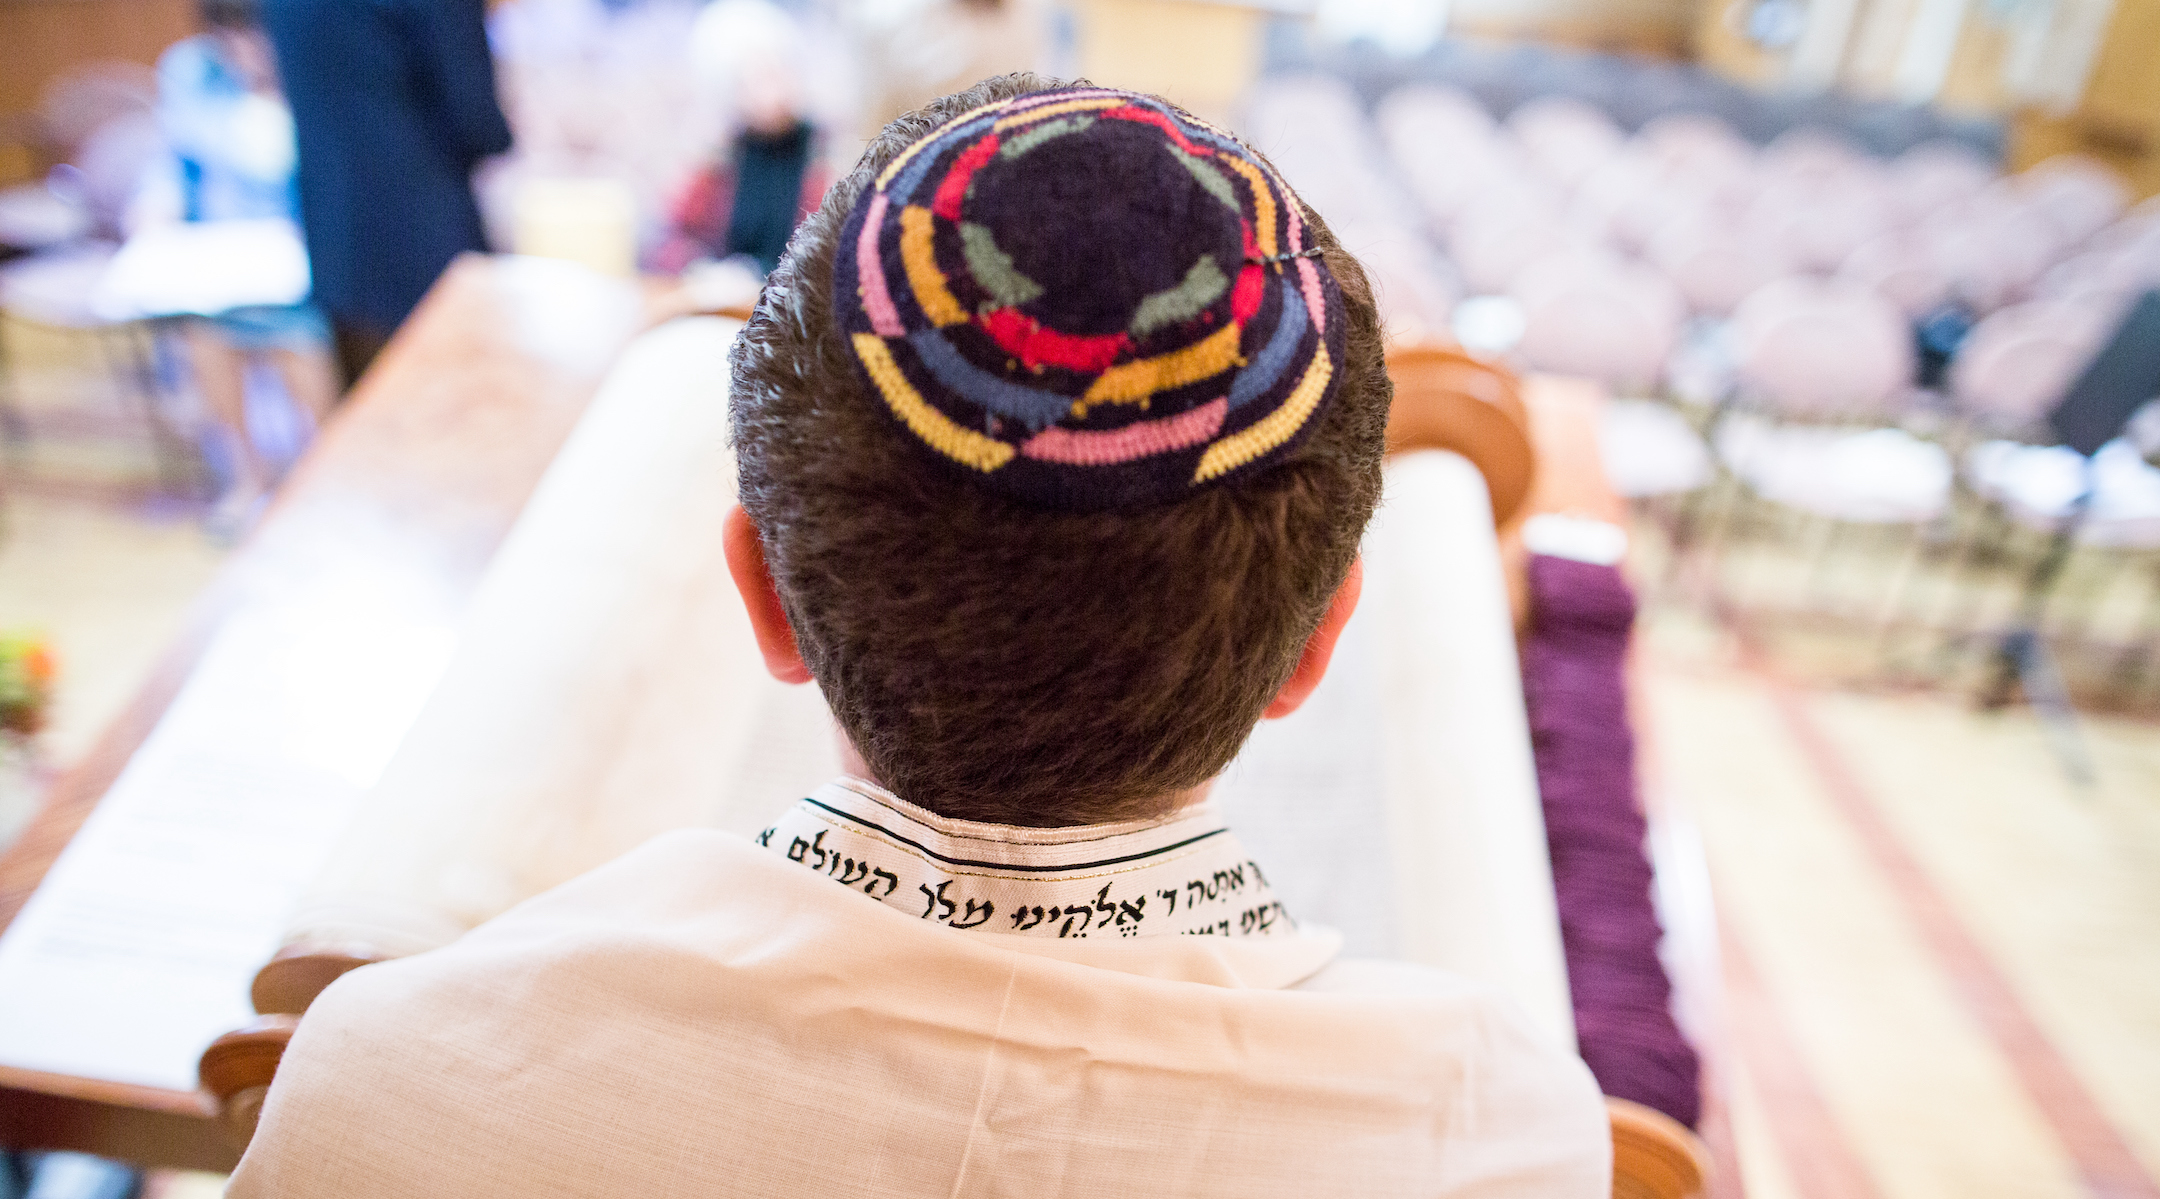 a man wearing a tallit and a colorful kippah seen from above in synagogue